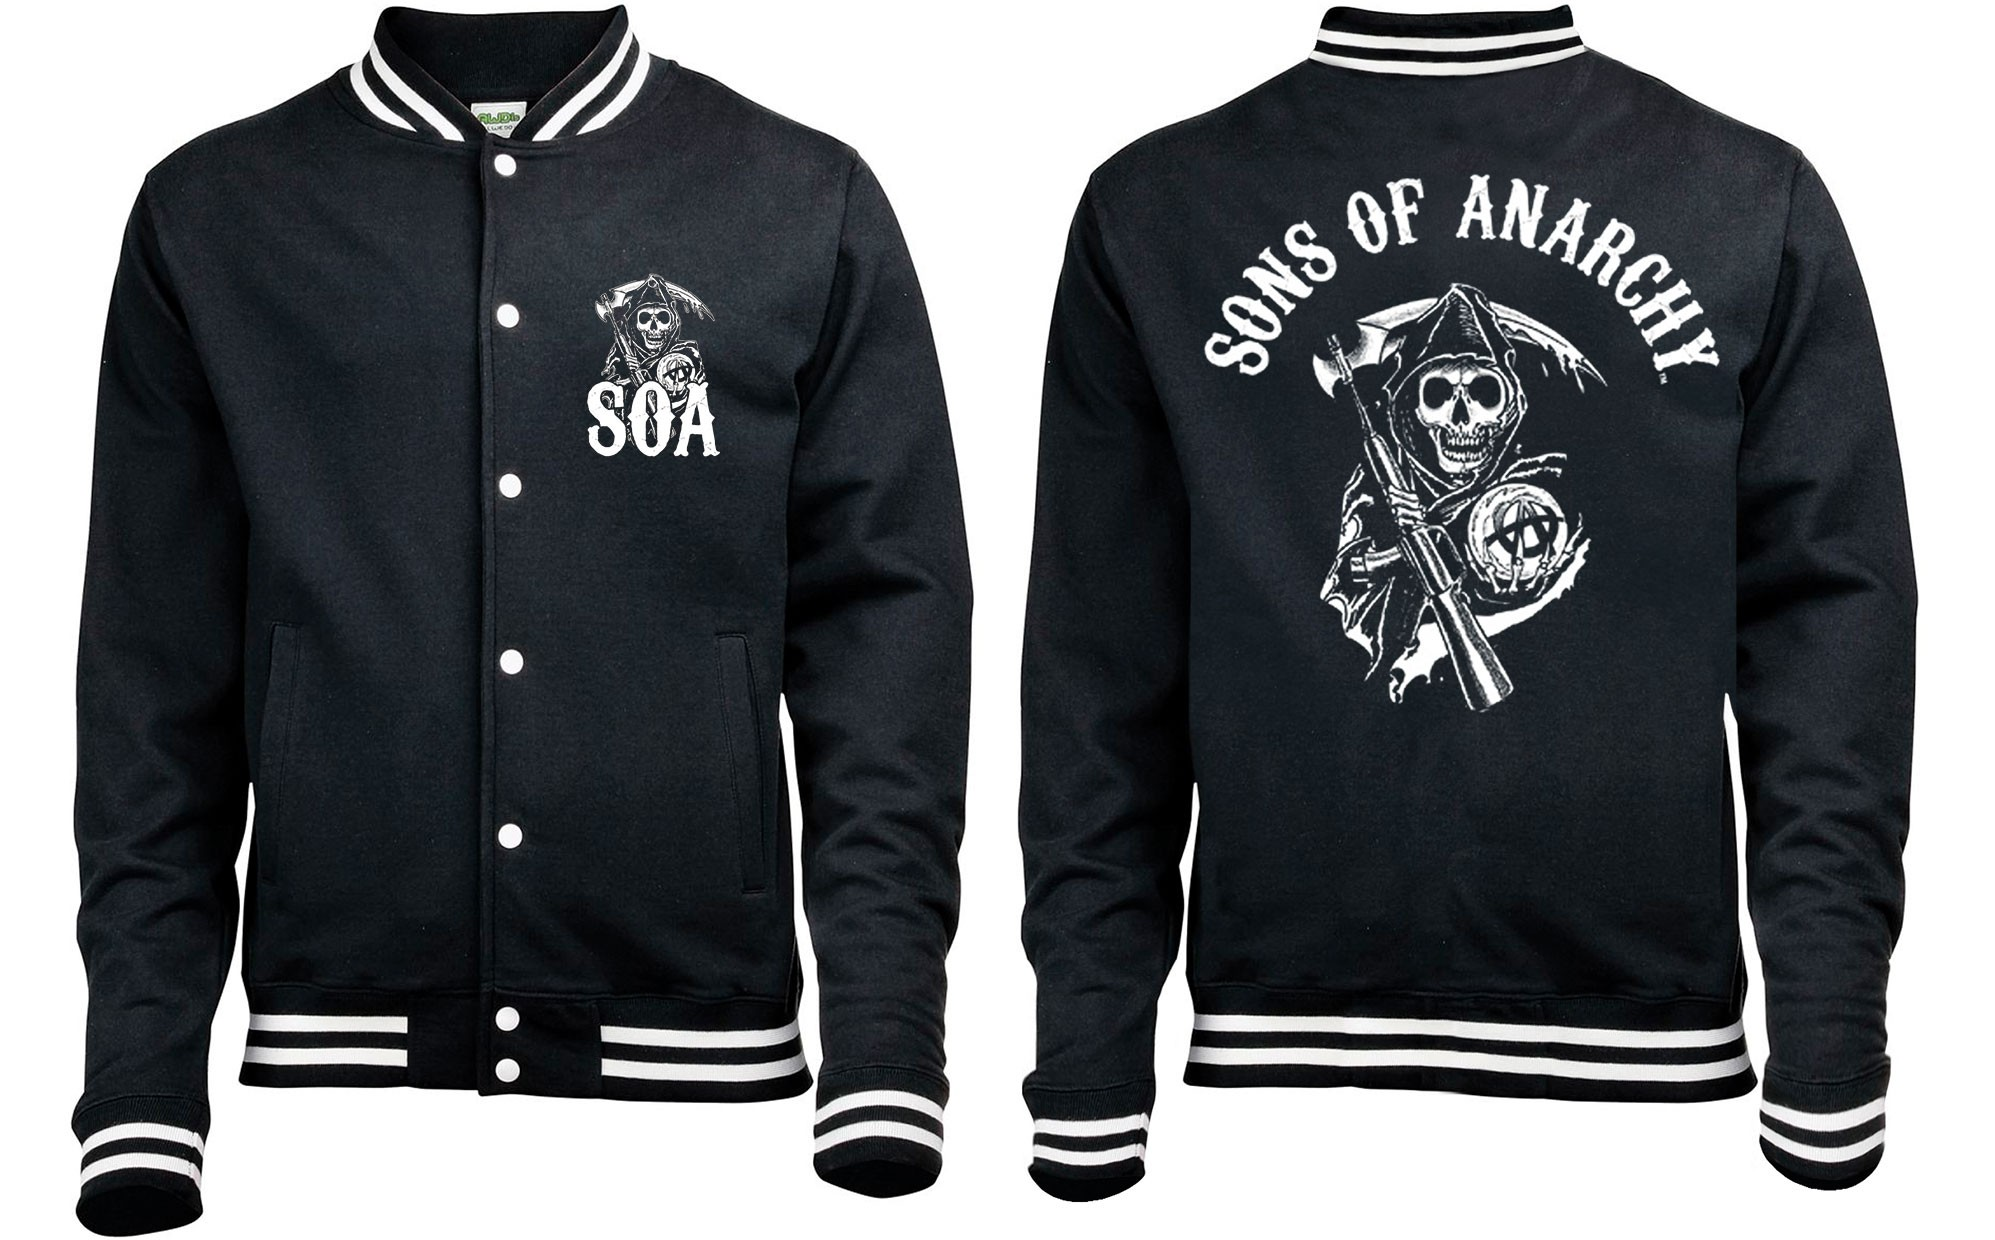 sons of anarchy 39 classic 39 baseball style varsity jacket. Black Bedroom Furniture Sets. Home Design Ideas